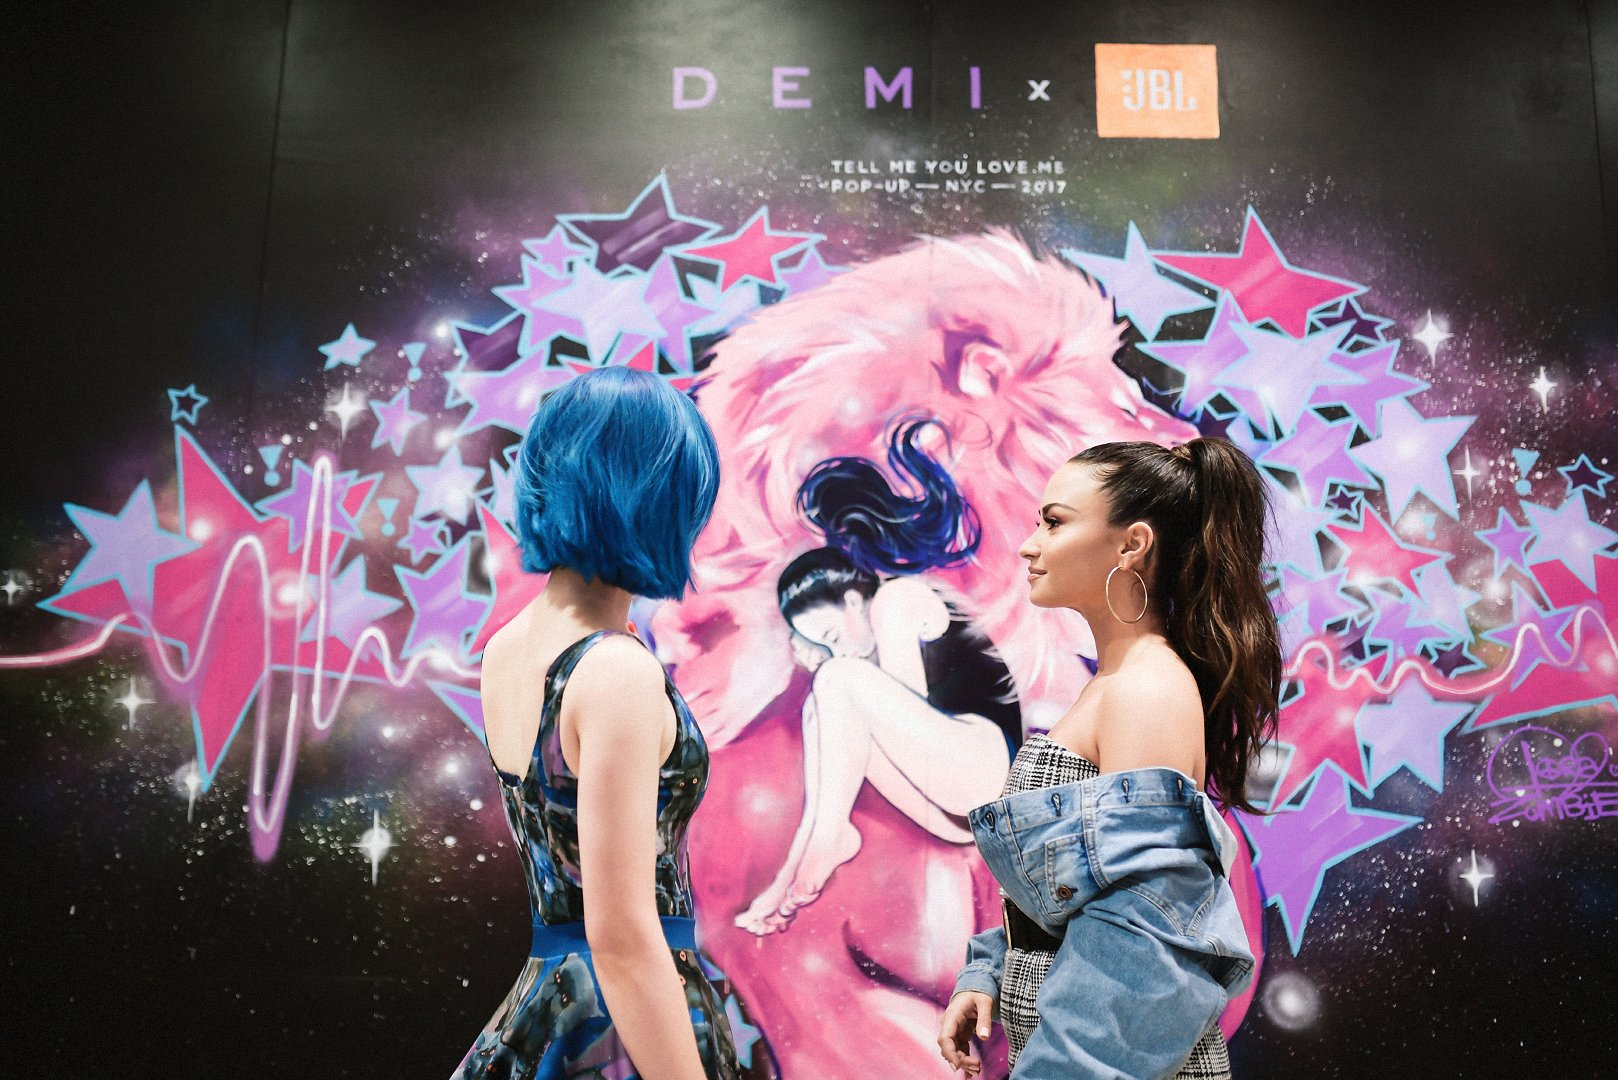 #TBT Thank you @LoraZombie for the incredible work you did at the #JBLxDemi popup in NYC!! You are incredible ❤️ https://t.co/bX6f1U8RcS